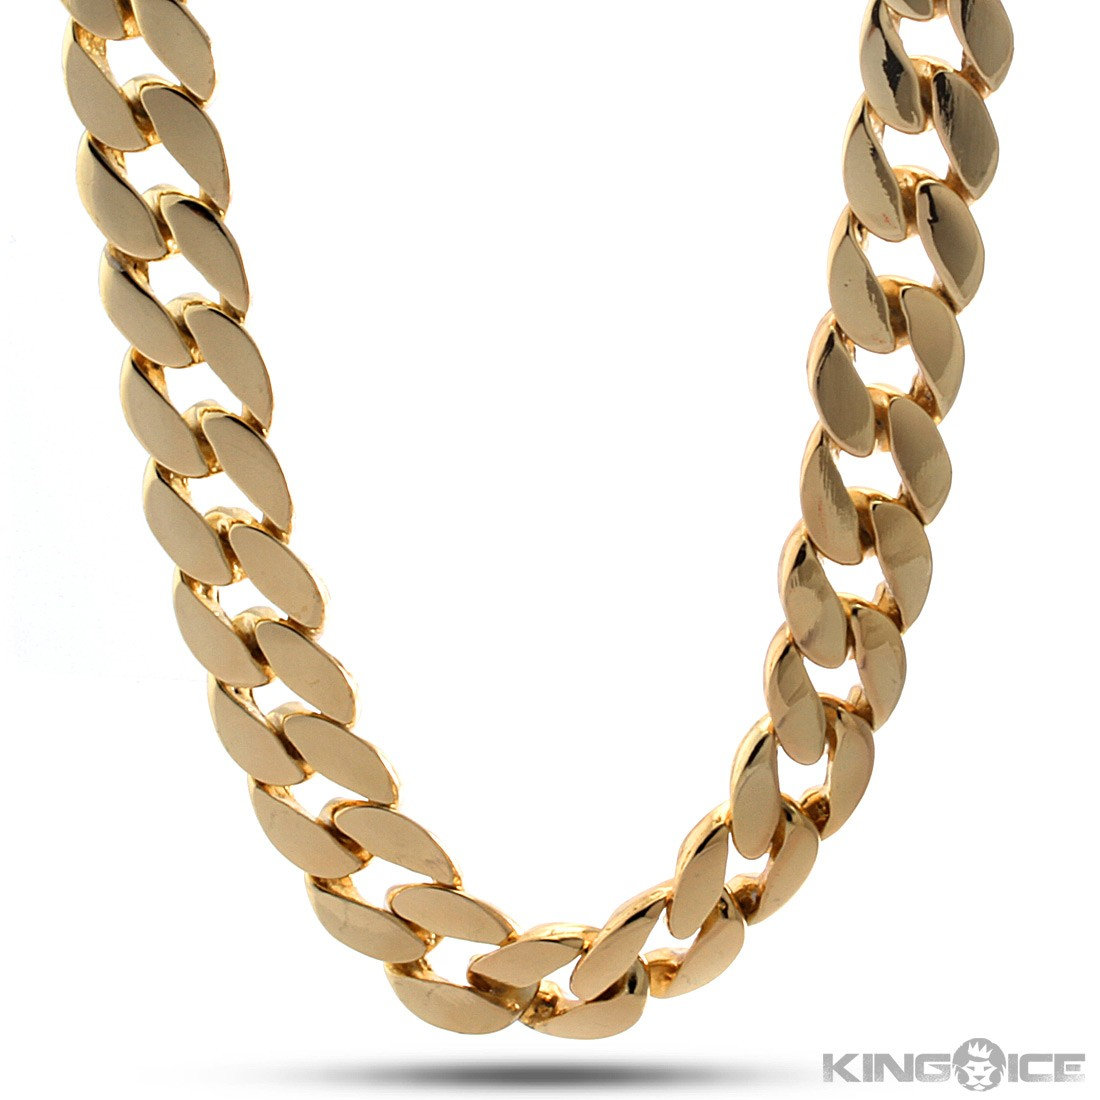 8 Gold Chain Vector Images - Vector Gold Chain Necklace ...  Chain Vector